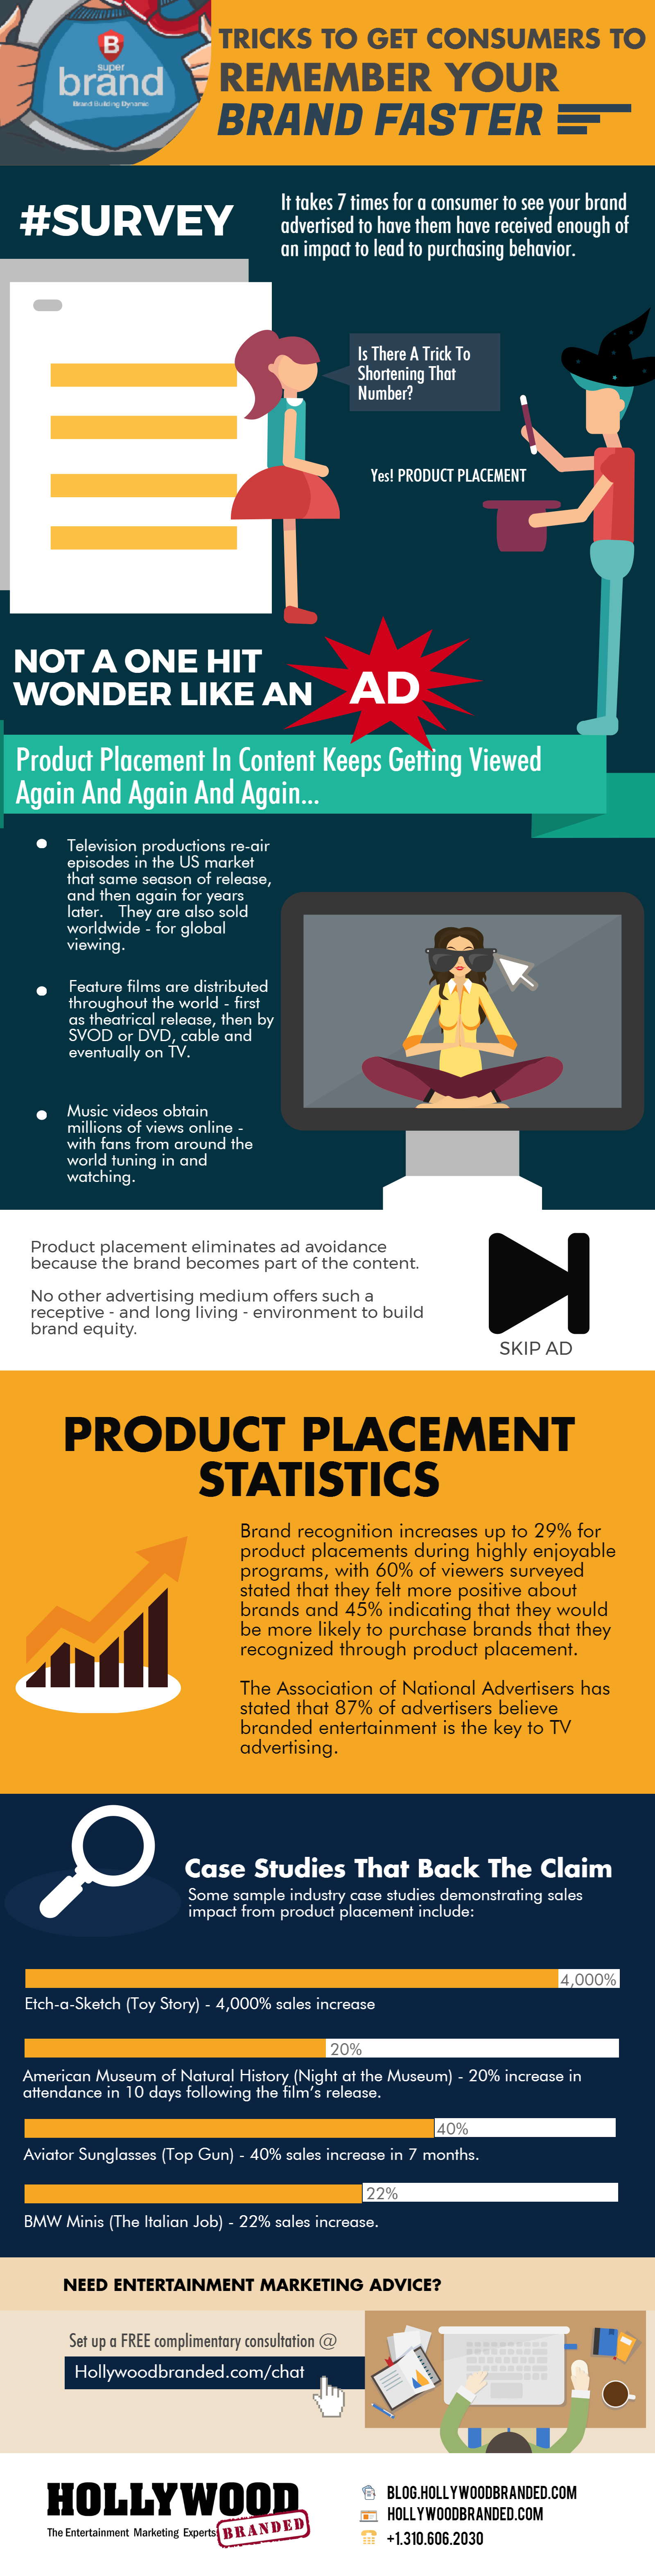 Getting Consumers To Remember Your Brand Faster Infographic.png